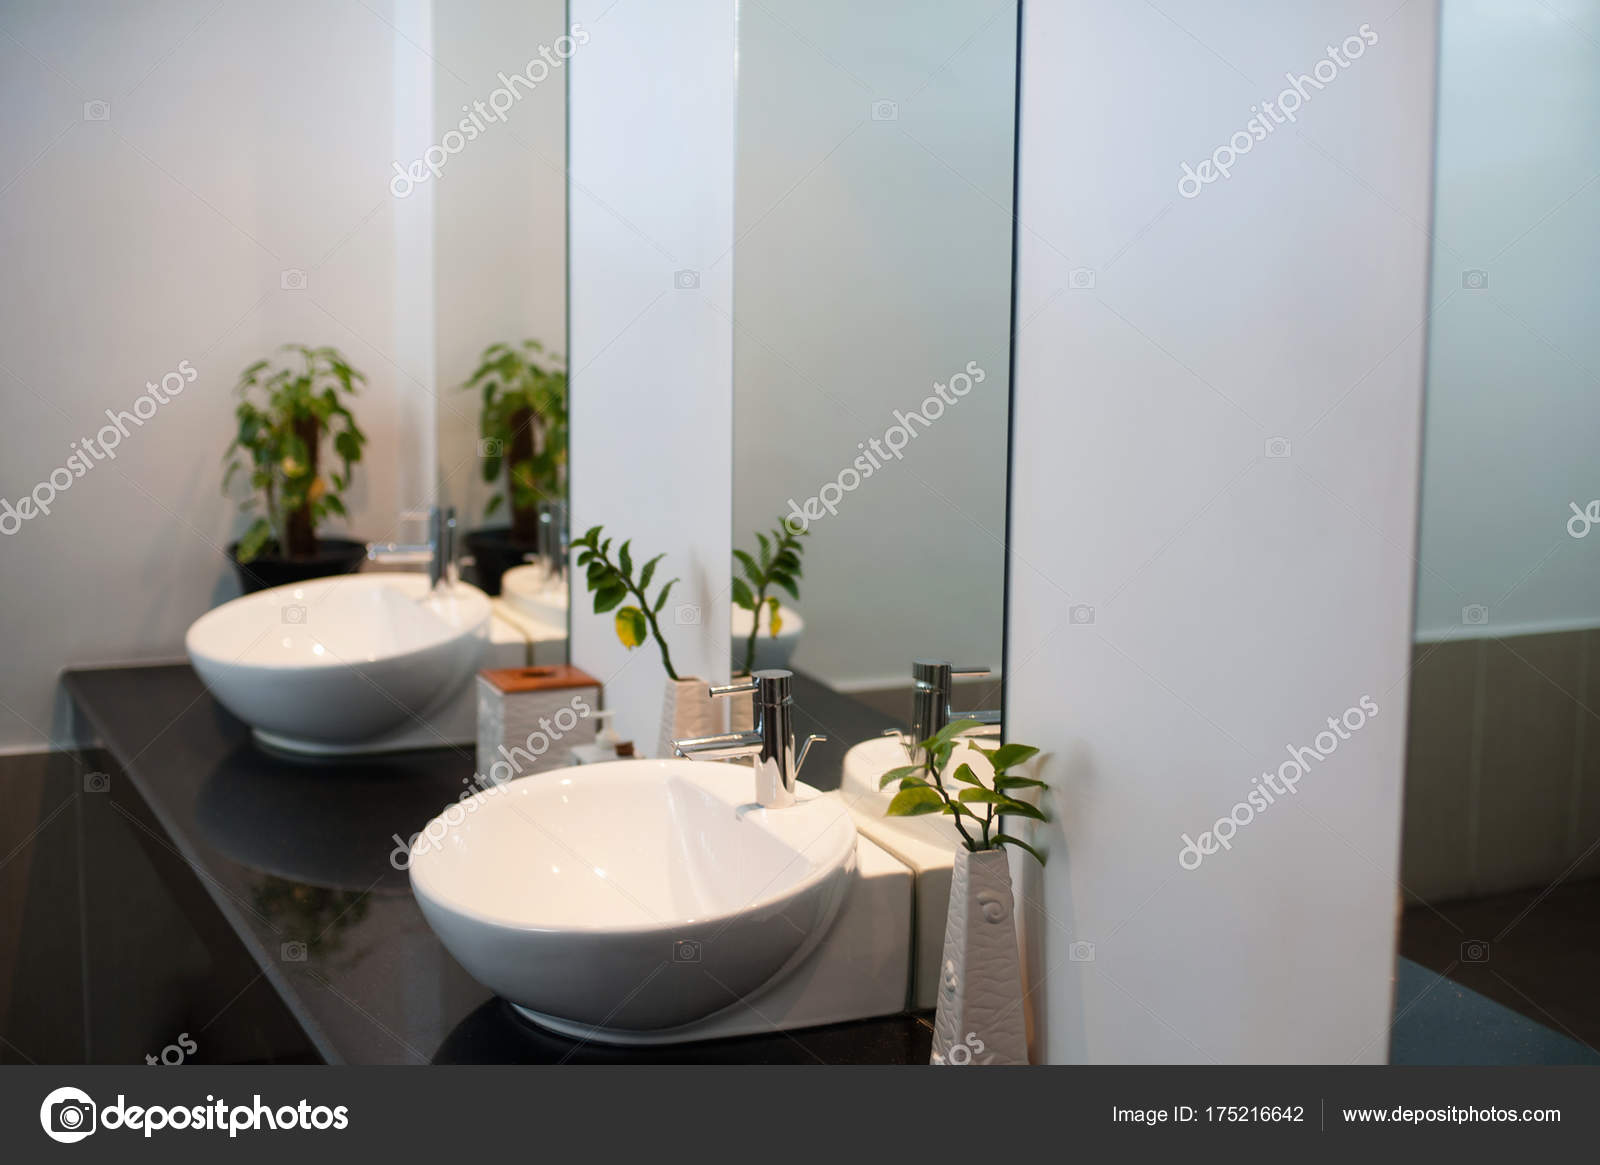 Ceramic Sink With Chrome Mixer In Contemporary Toilet Interior Of European Public Washroom Photo By Dmvasilenko